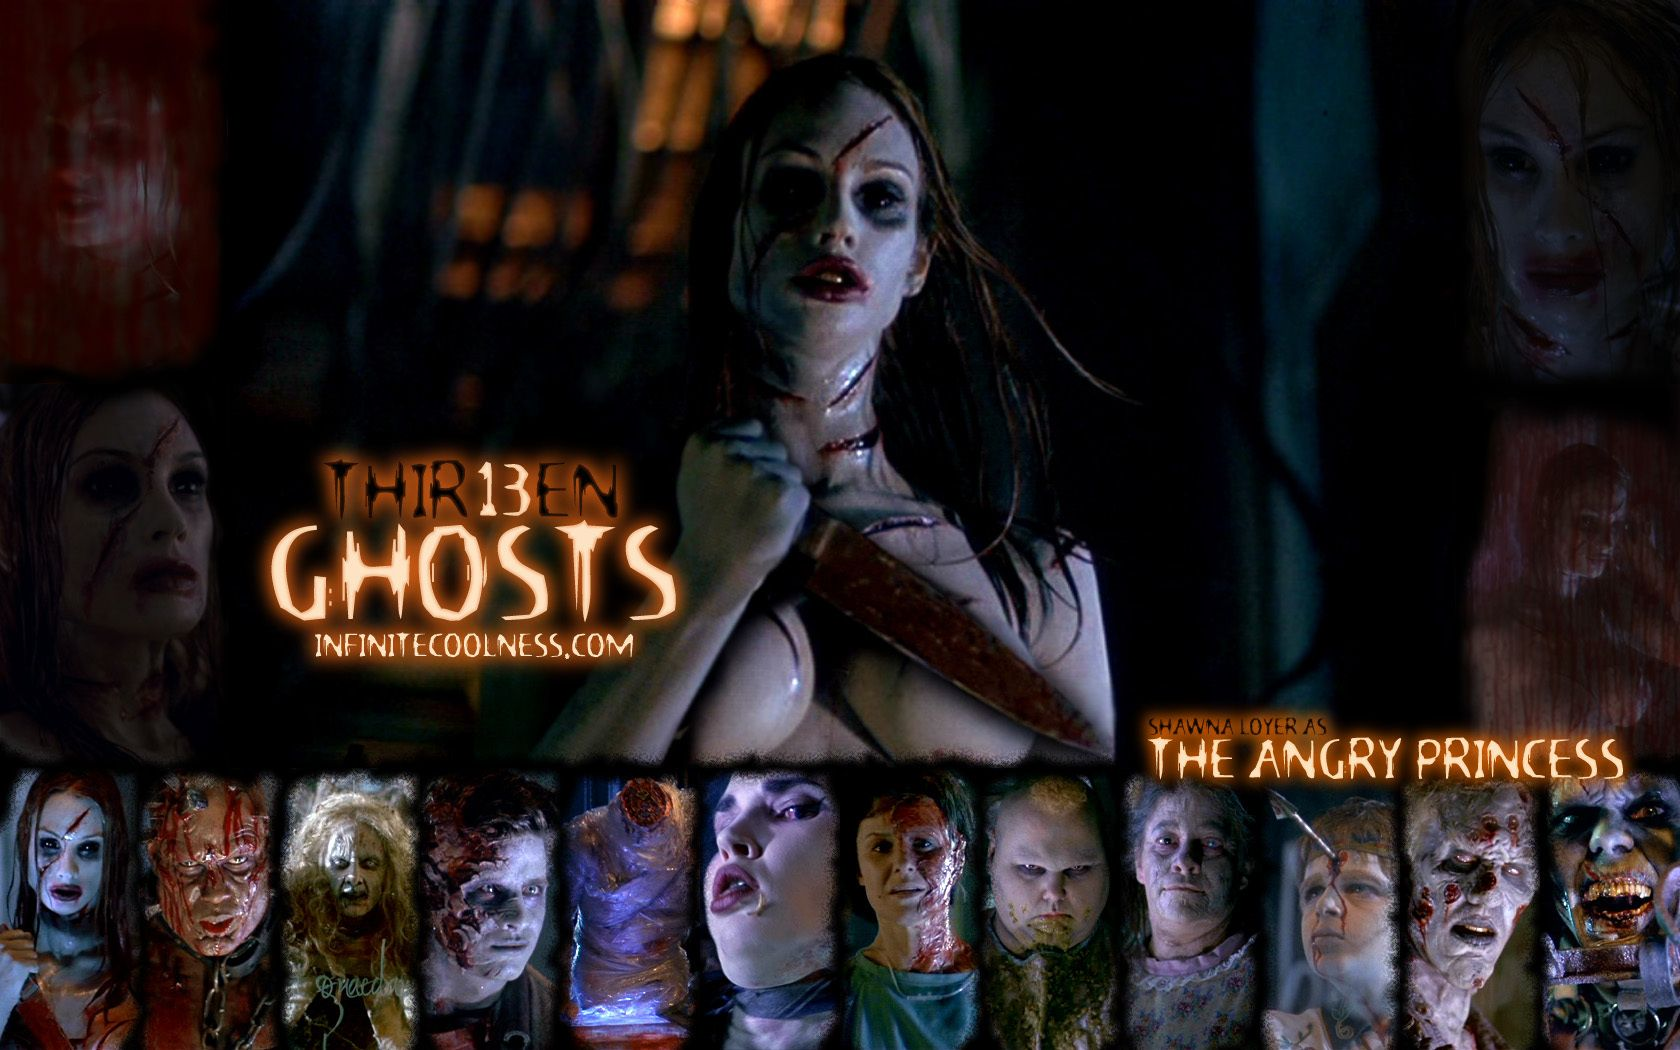 Thir13en Ghosts Wallpaper Thir13en Ghosts Wallpaper Horror Movie Characters Ghost Movies Scary Movies